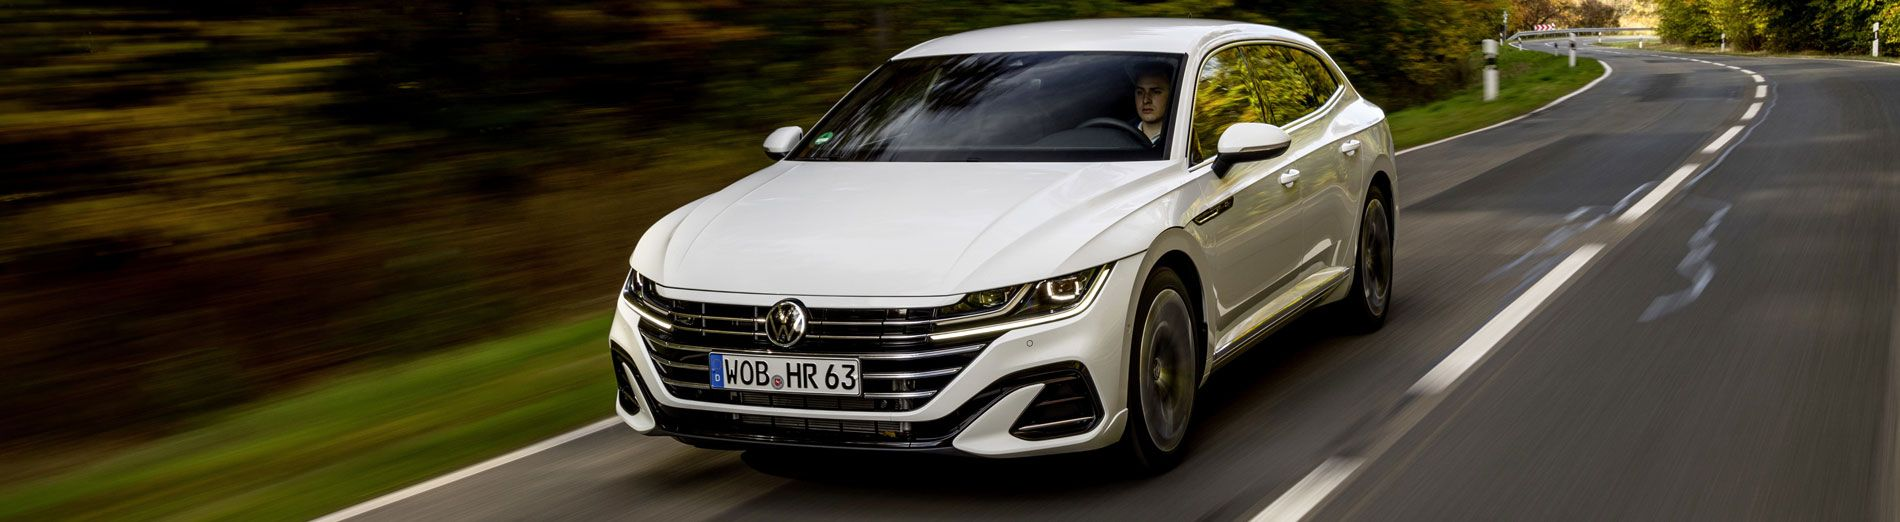 Plug-in hybrid Arteon now open for order